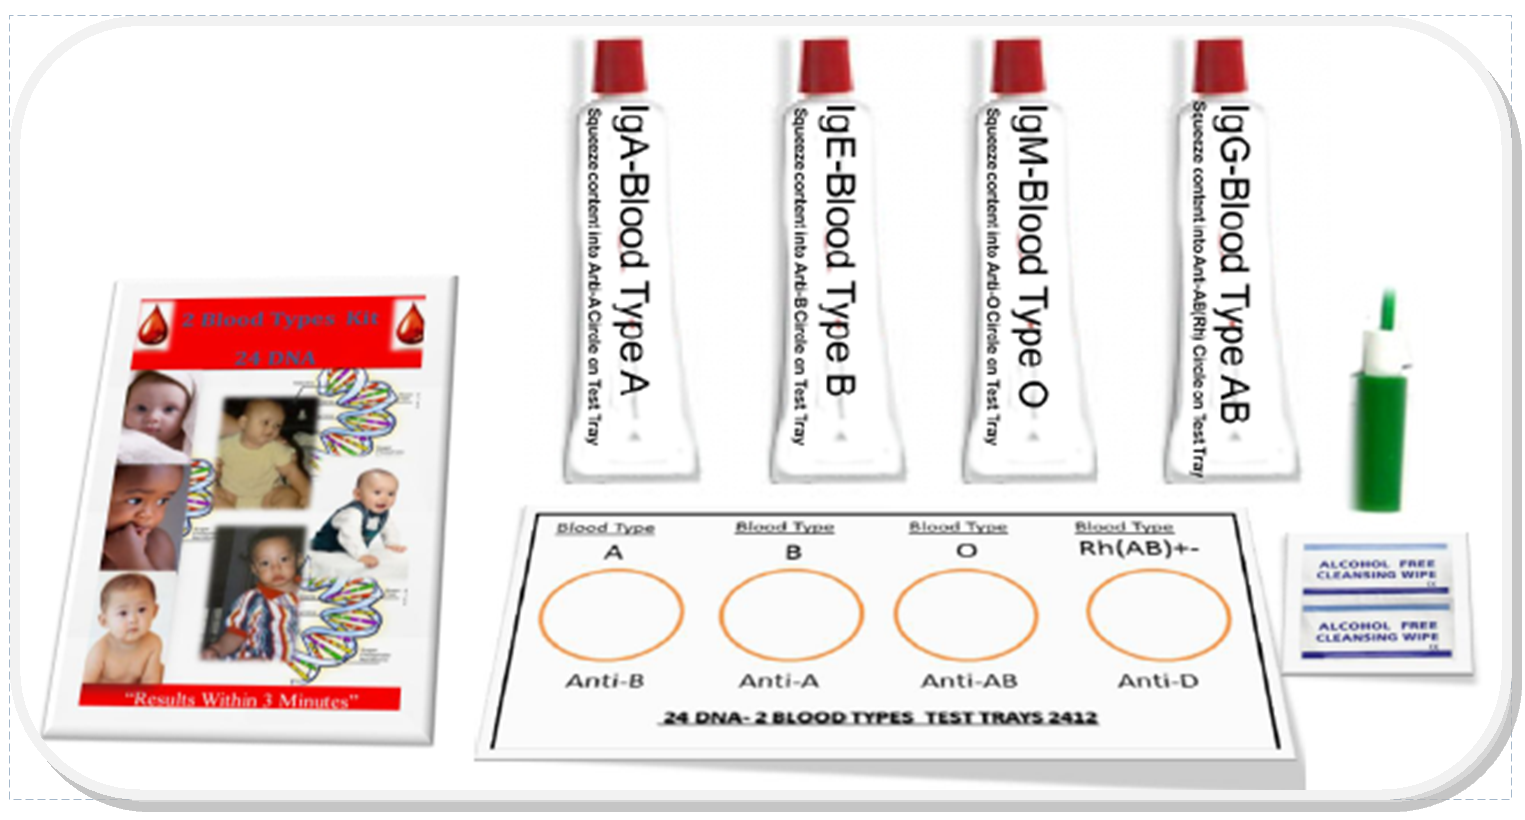 """The """"24 DNA-2 Blood Types Kit"""" - Results Within 3 Minutes"""